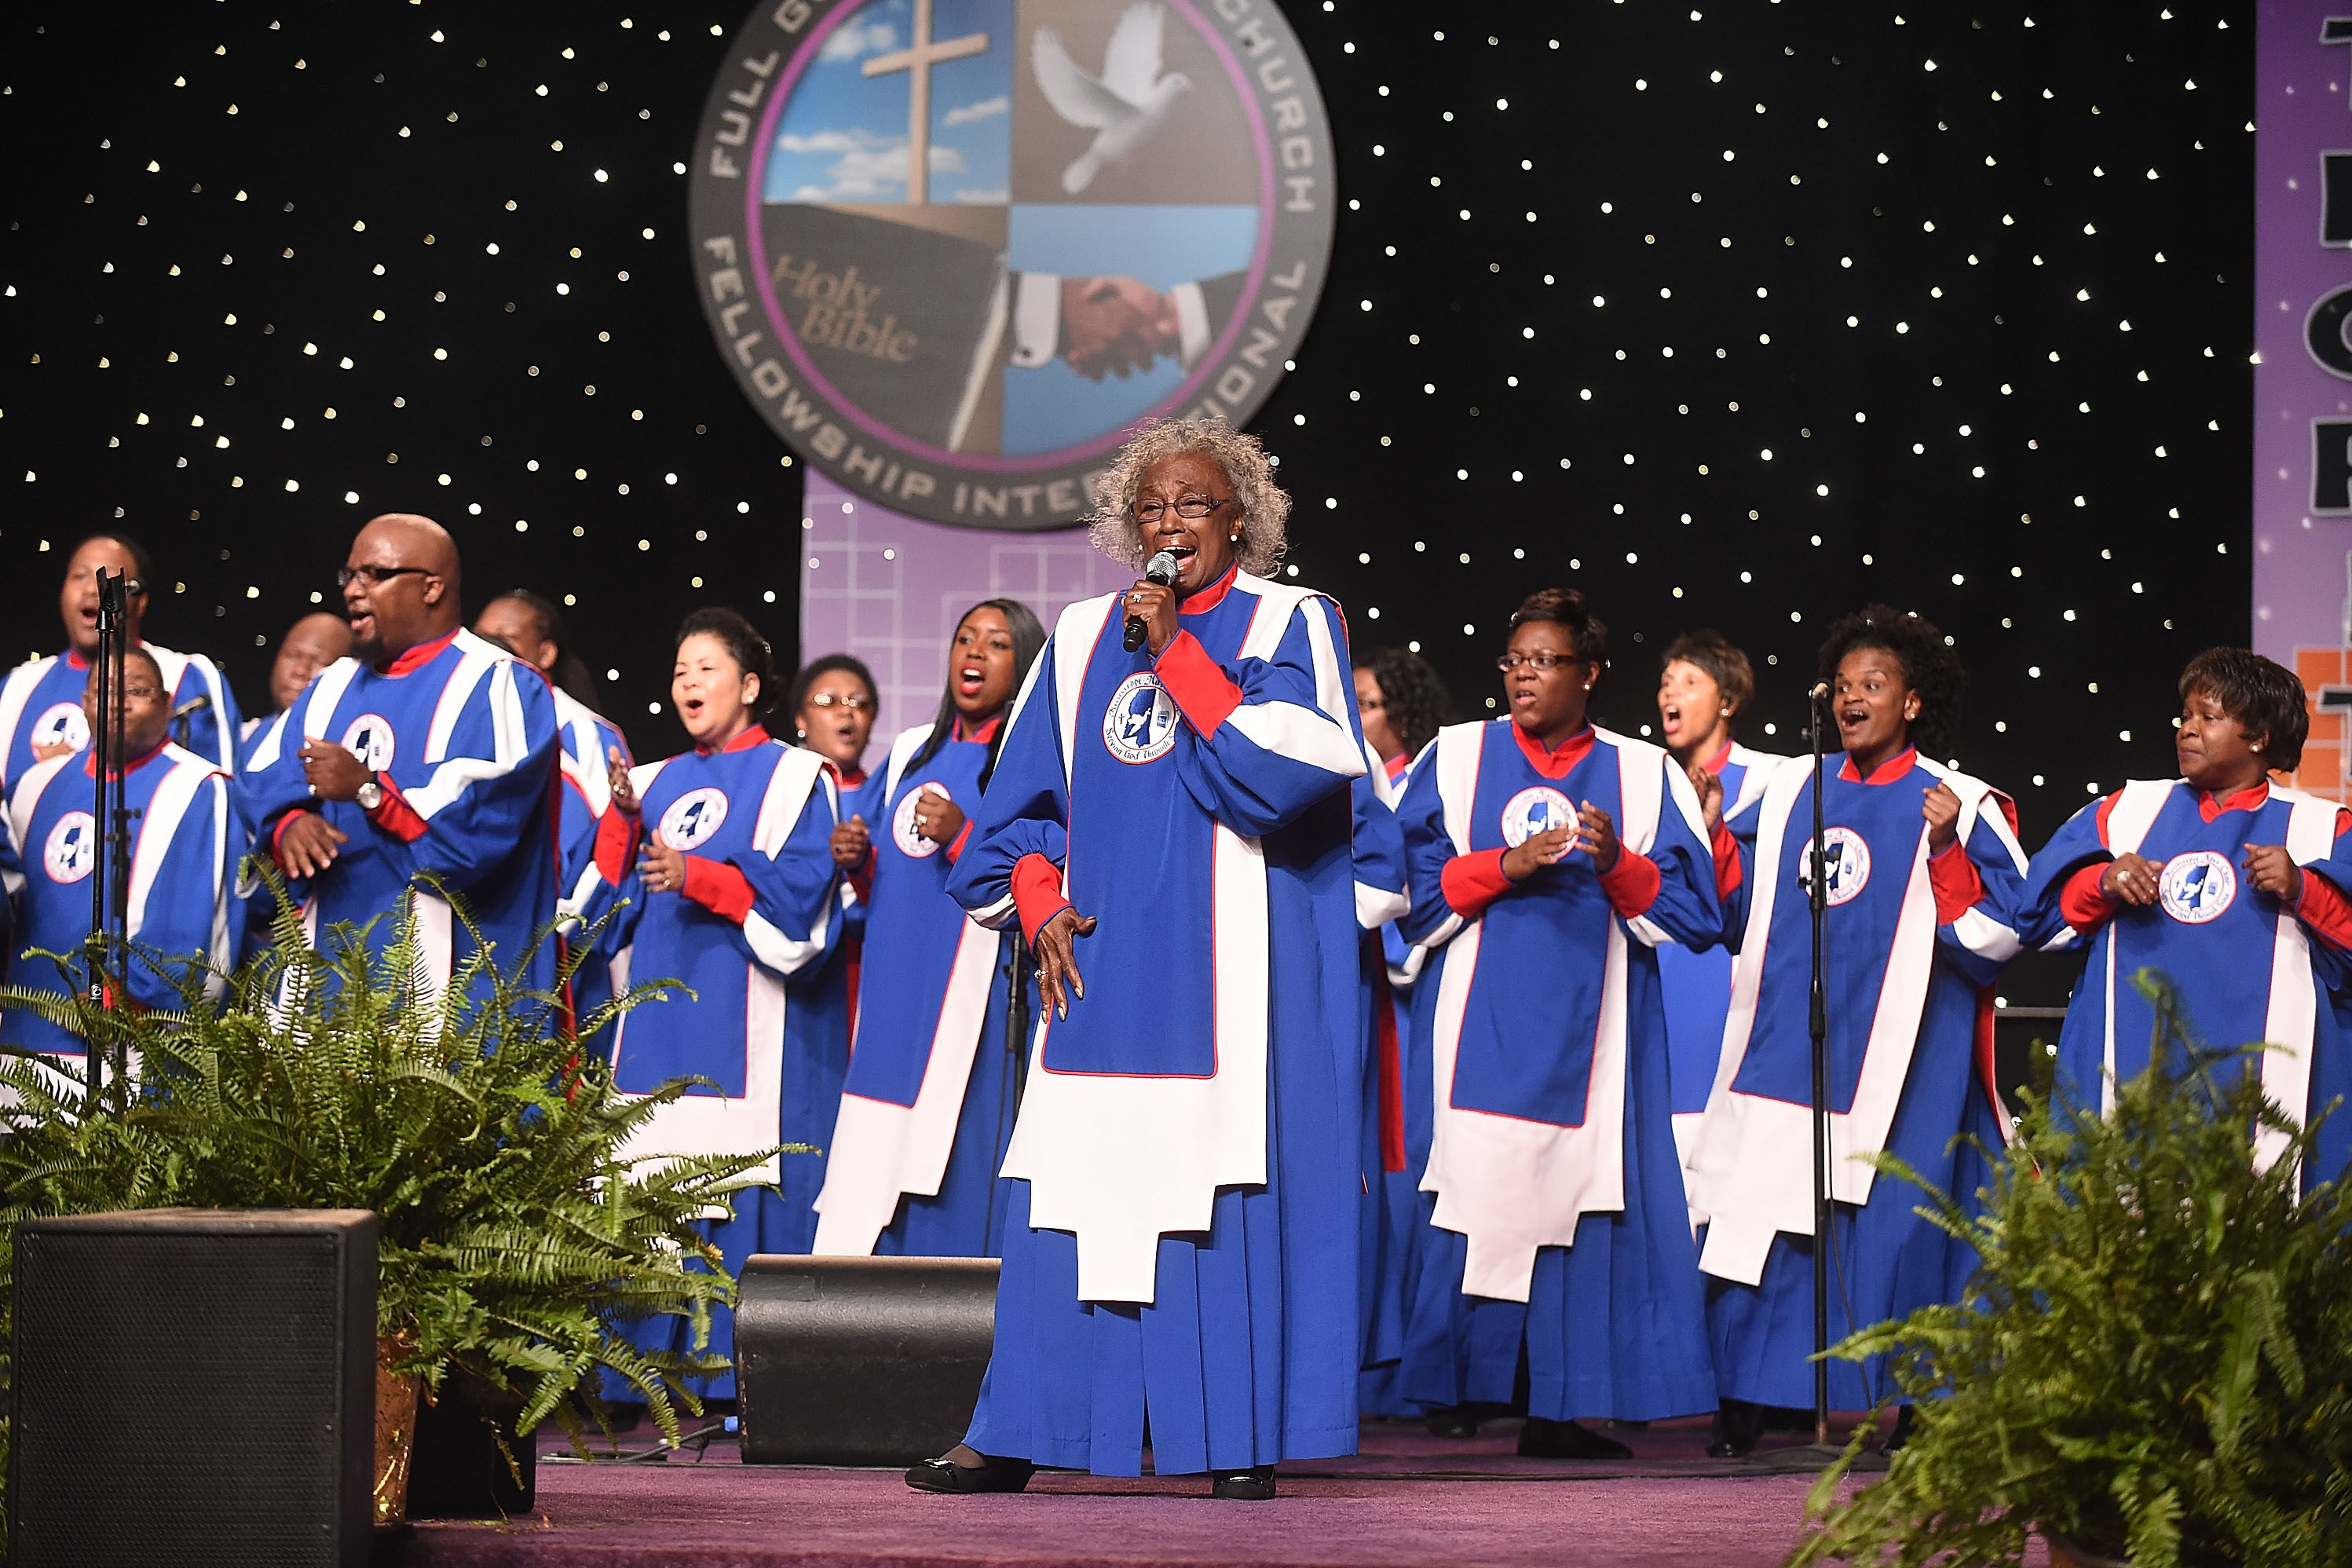 Why the Church Choir is a Symbol of Togetherness in the South